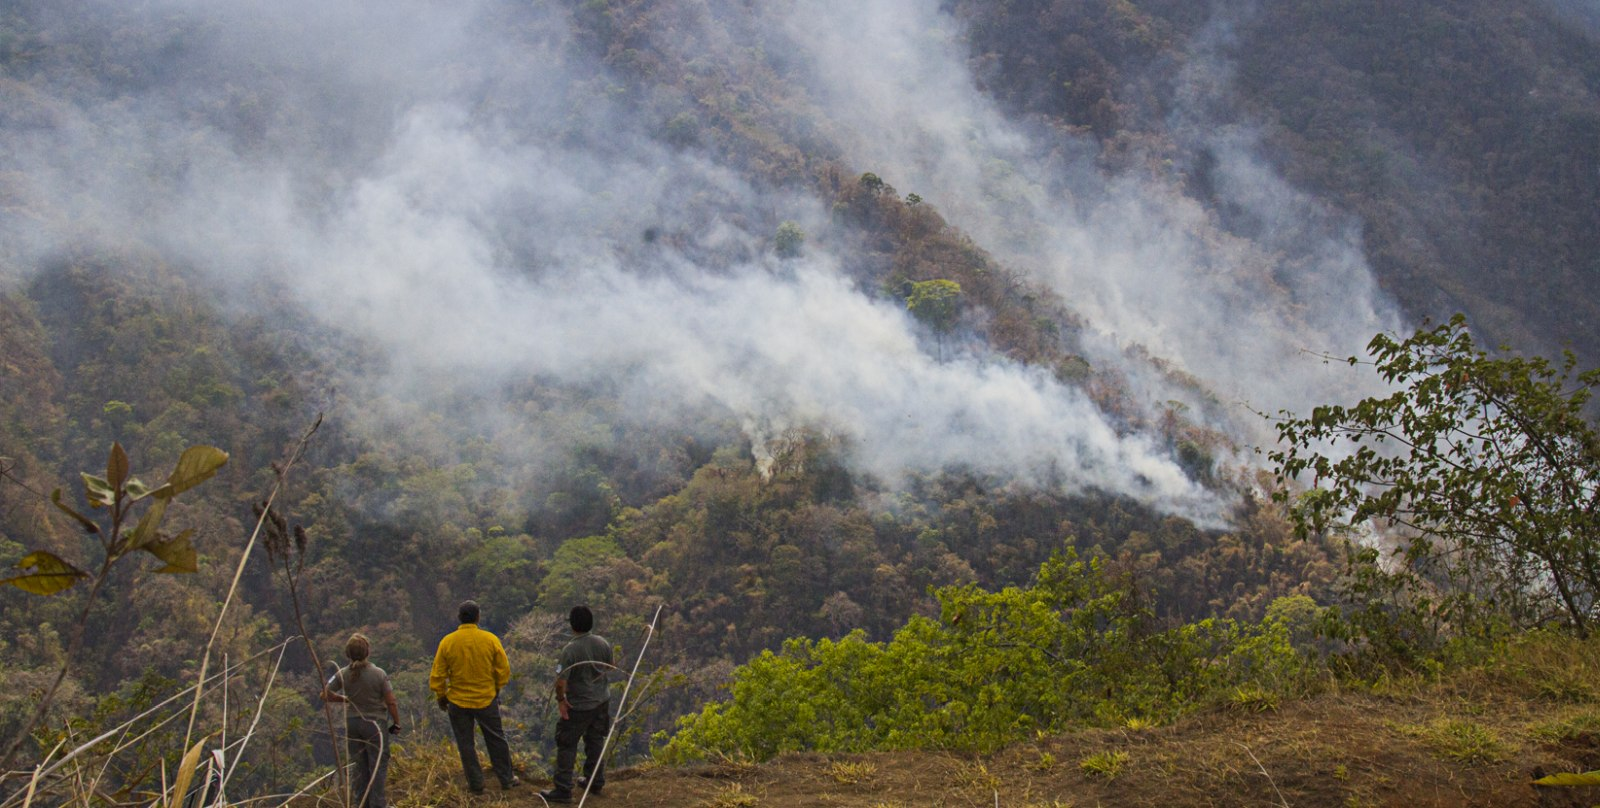 Fires in Guanacaste Have Consumed More Than 1800 Hectares of